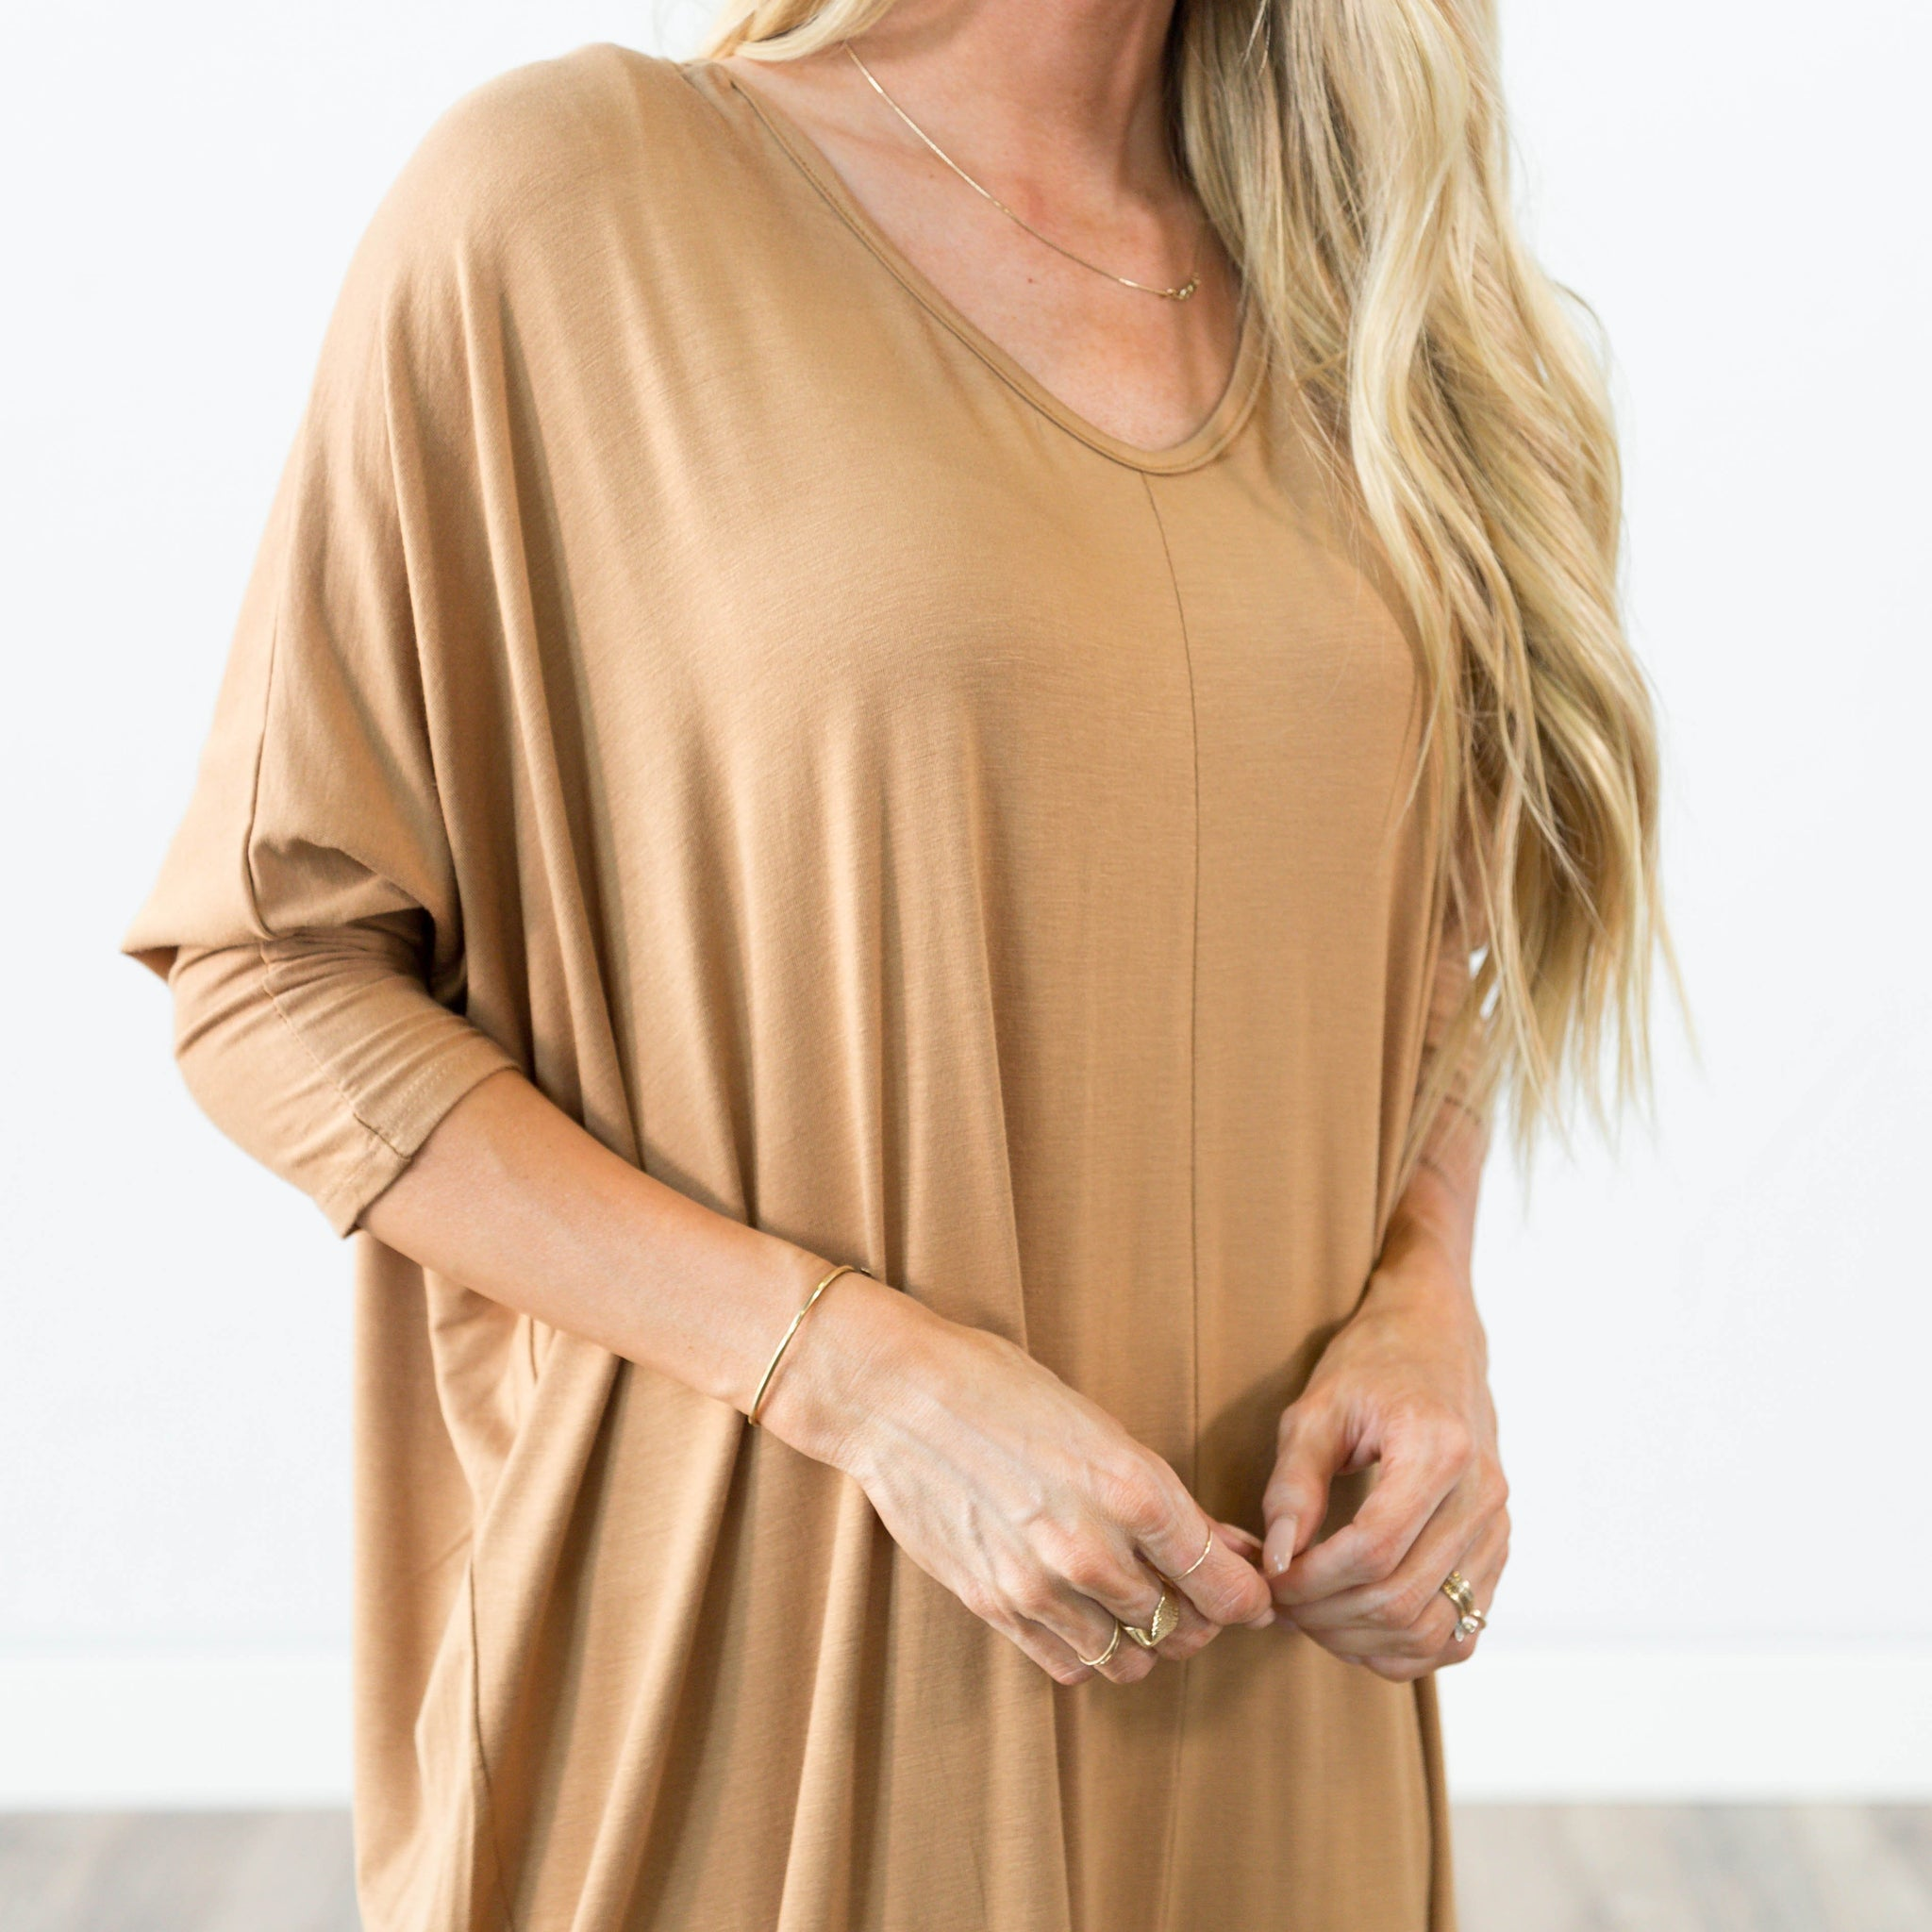 Elayna Dress in Camel